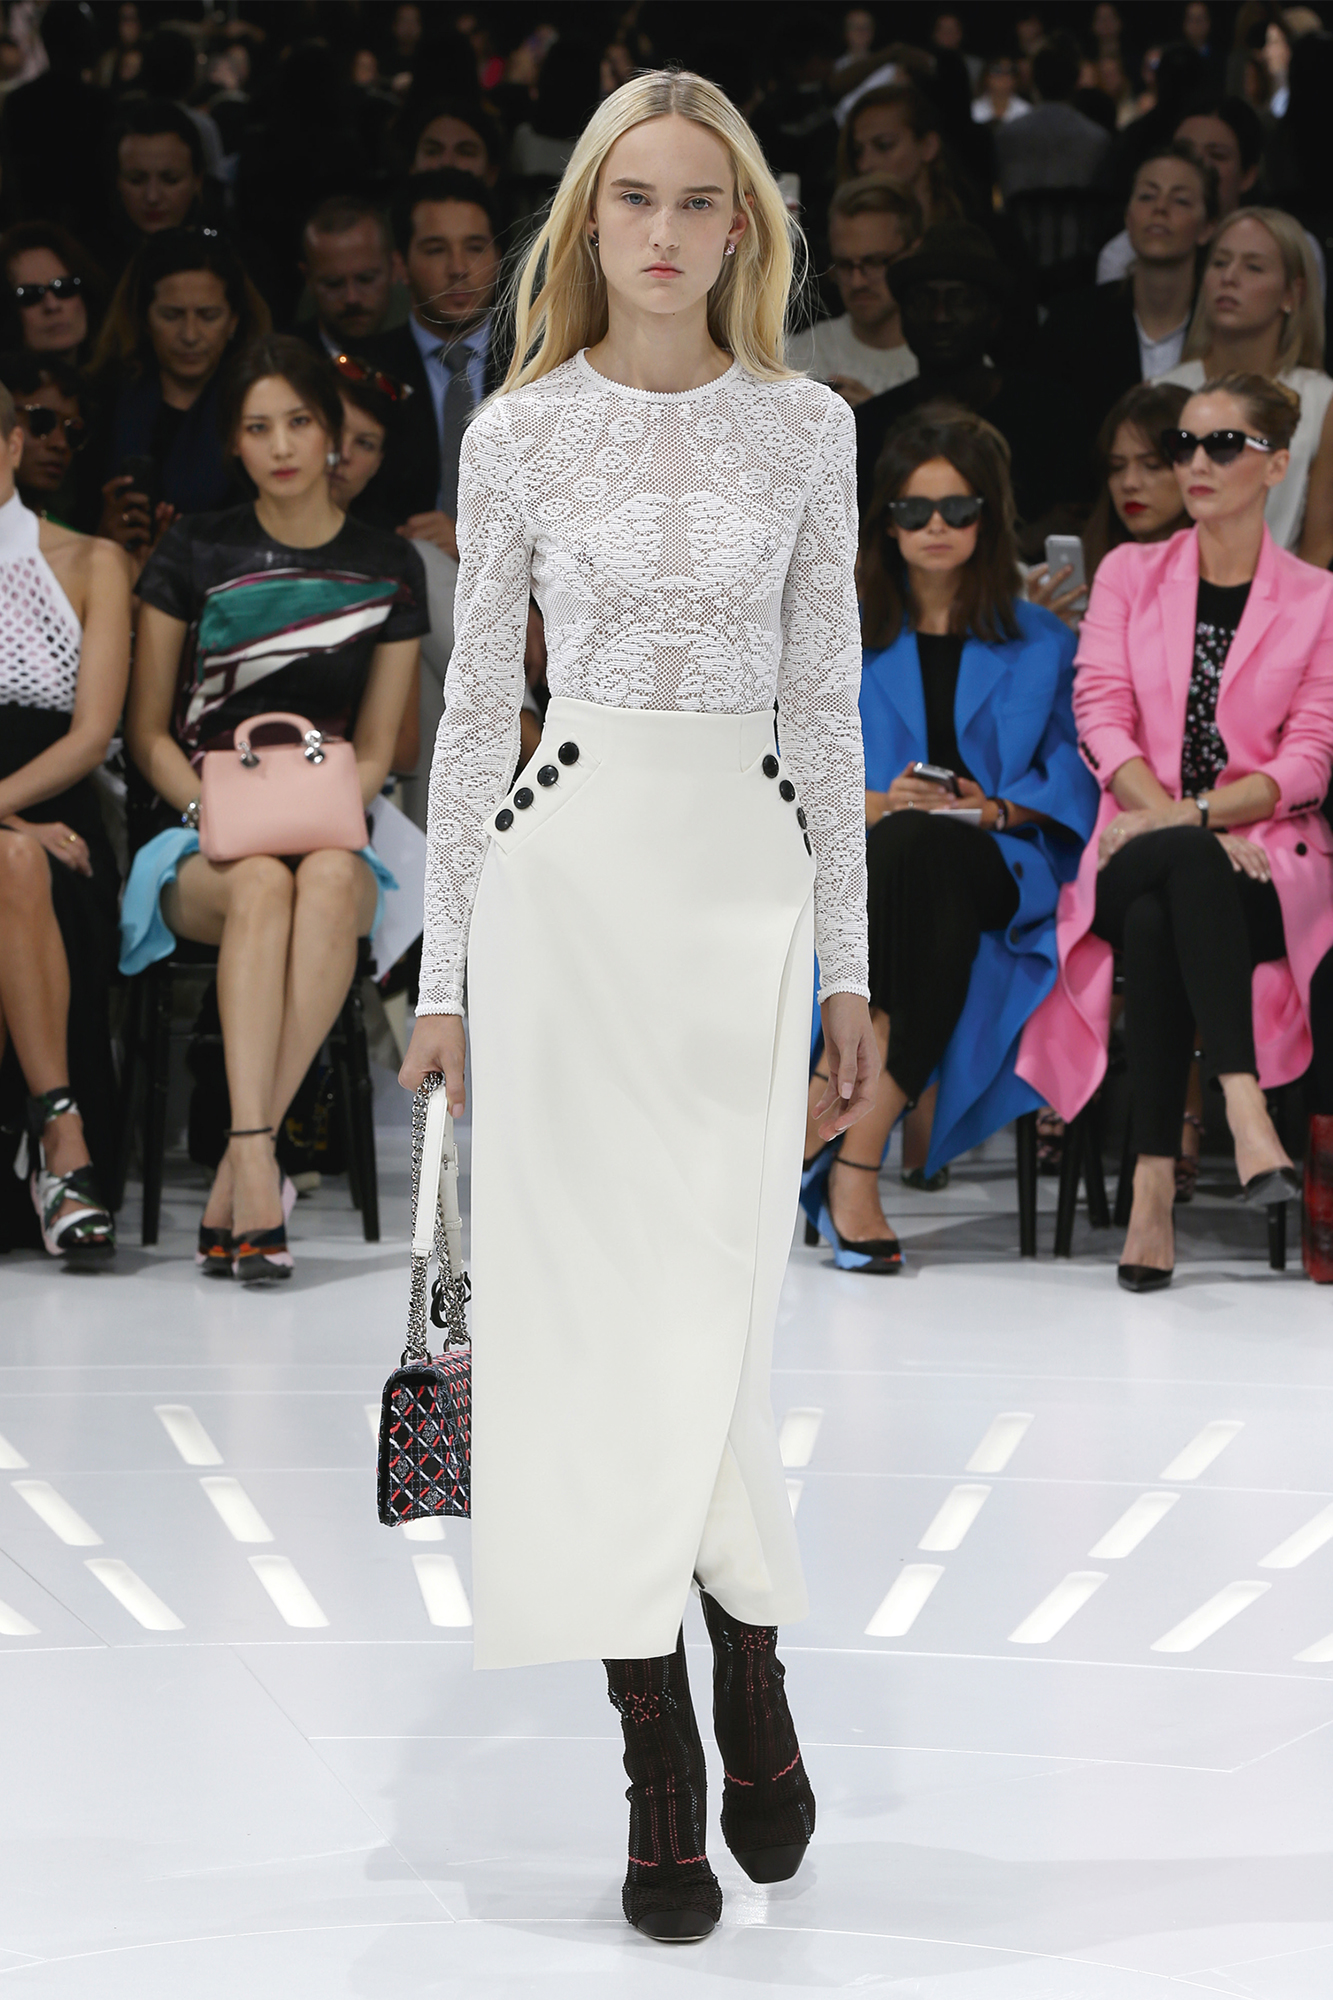 Christian Dior Haute Couture Spring-Summer Ready To Wear Dresses & Accessories Collection 2015-16 (32)